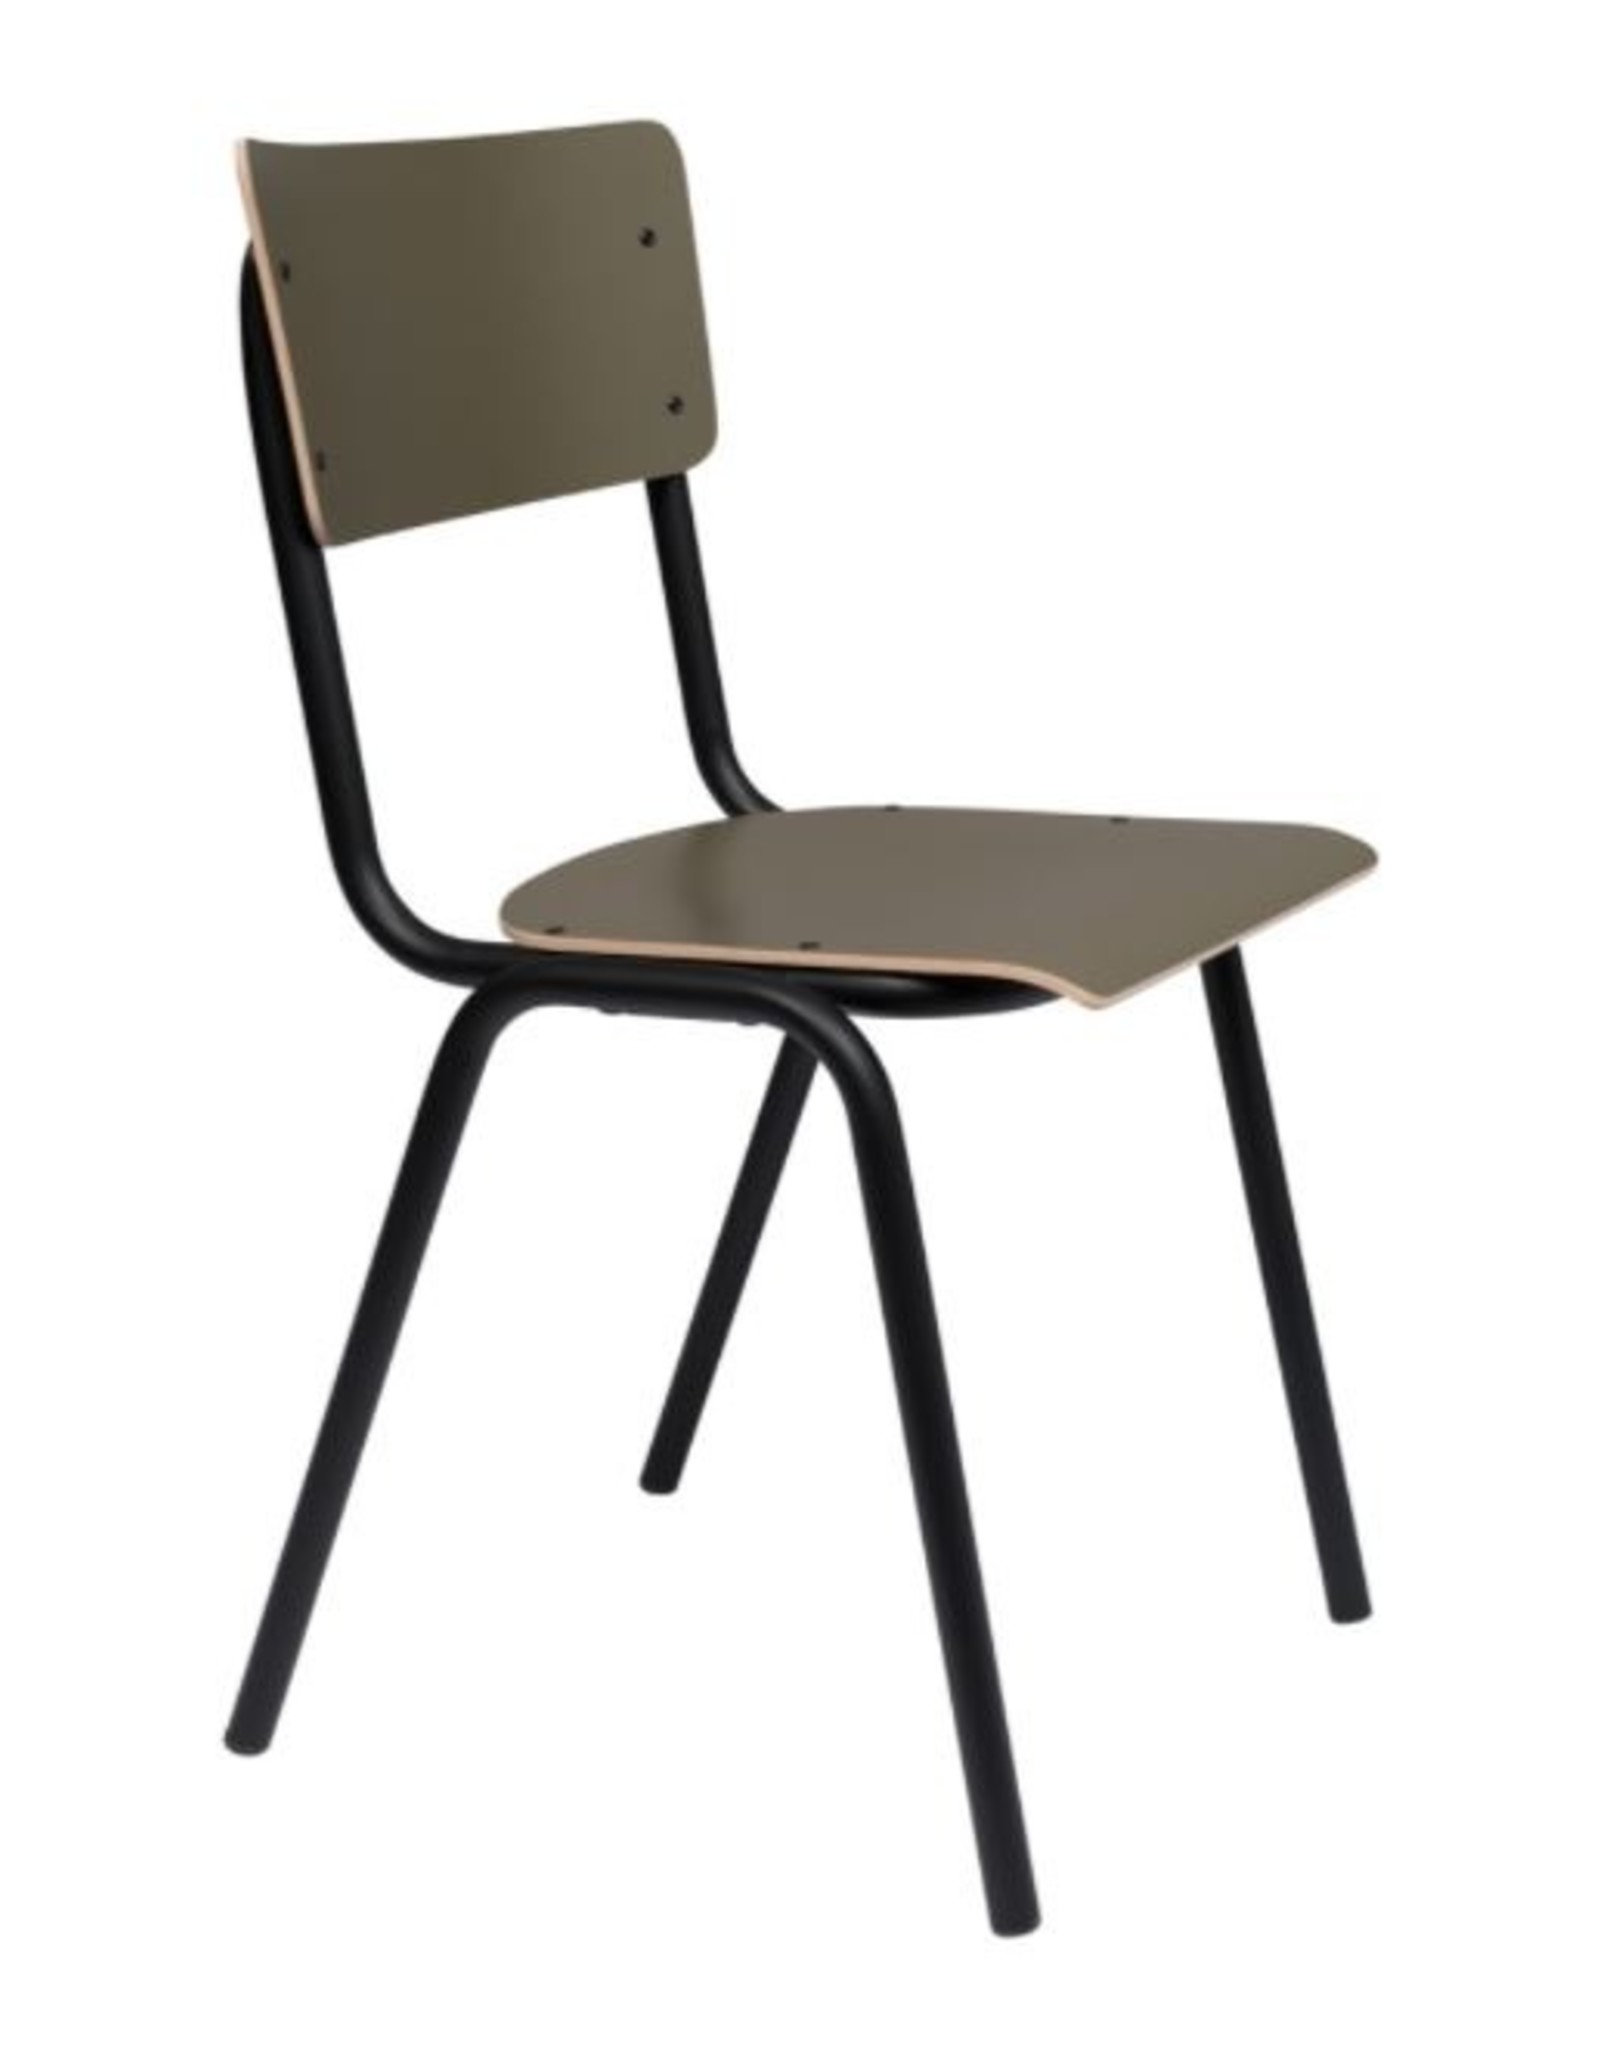 ZUIVER BV Back to School Matte Chair (set of 2)